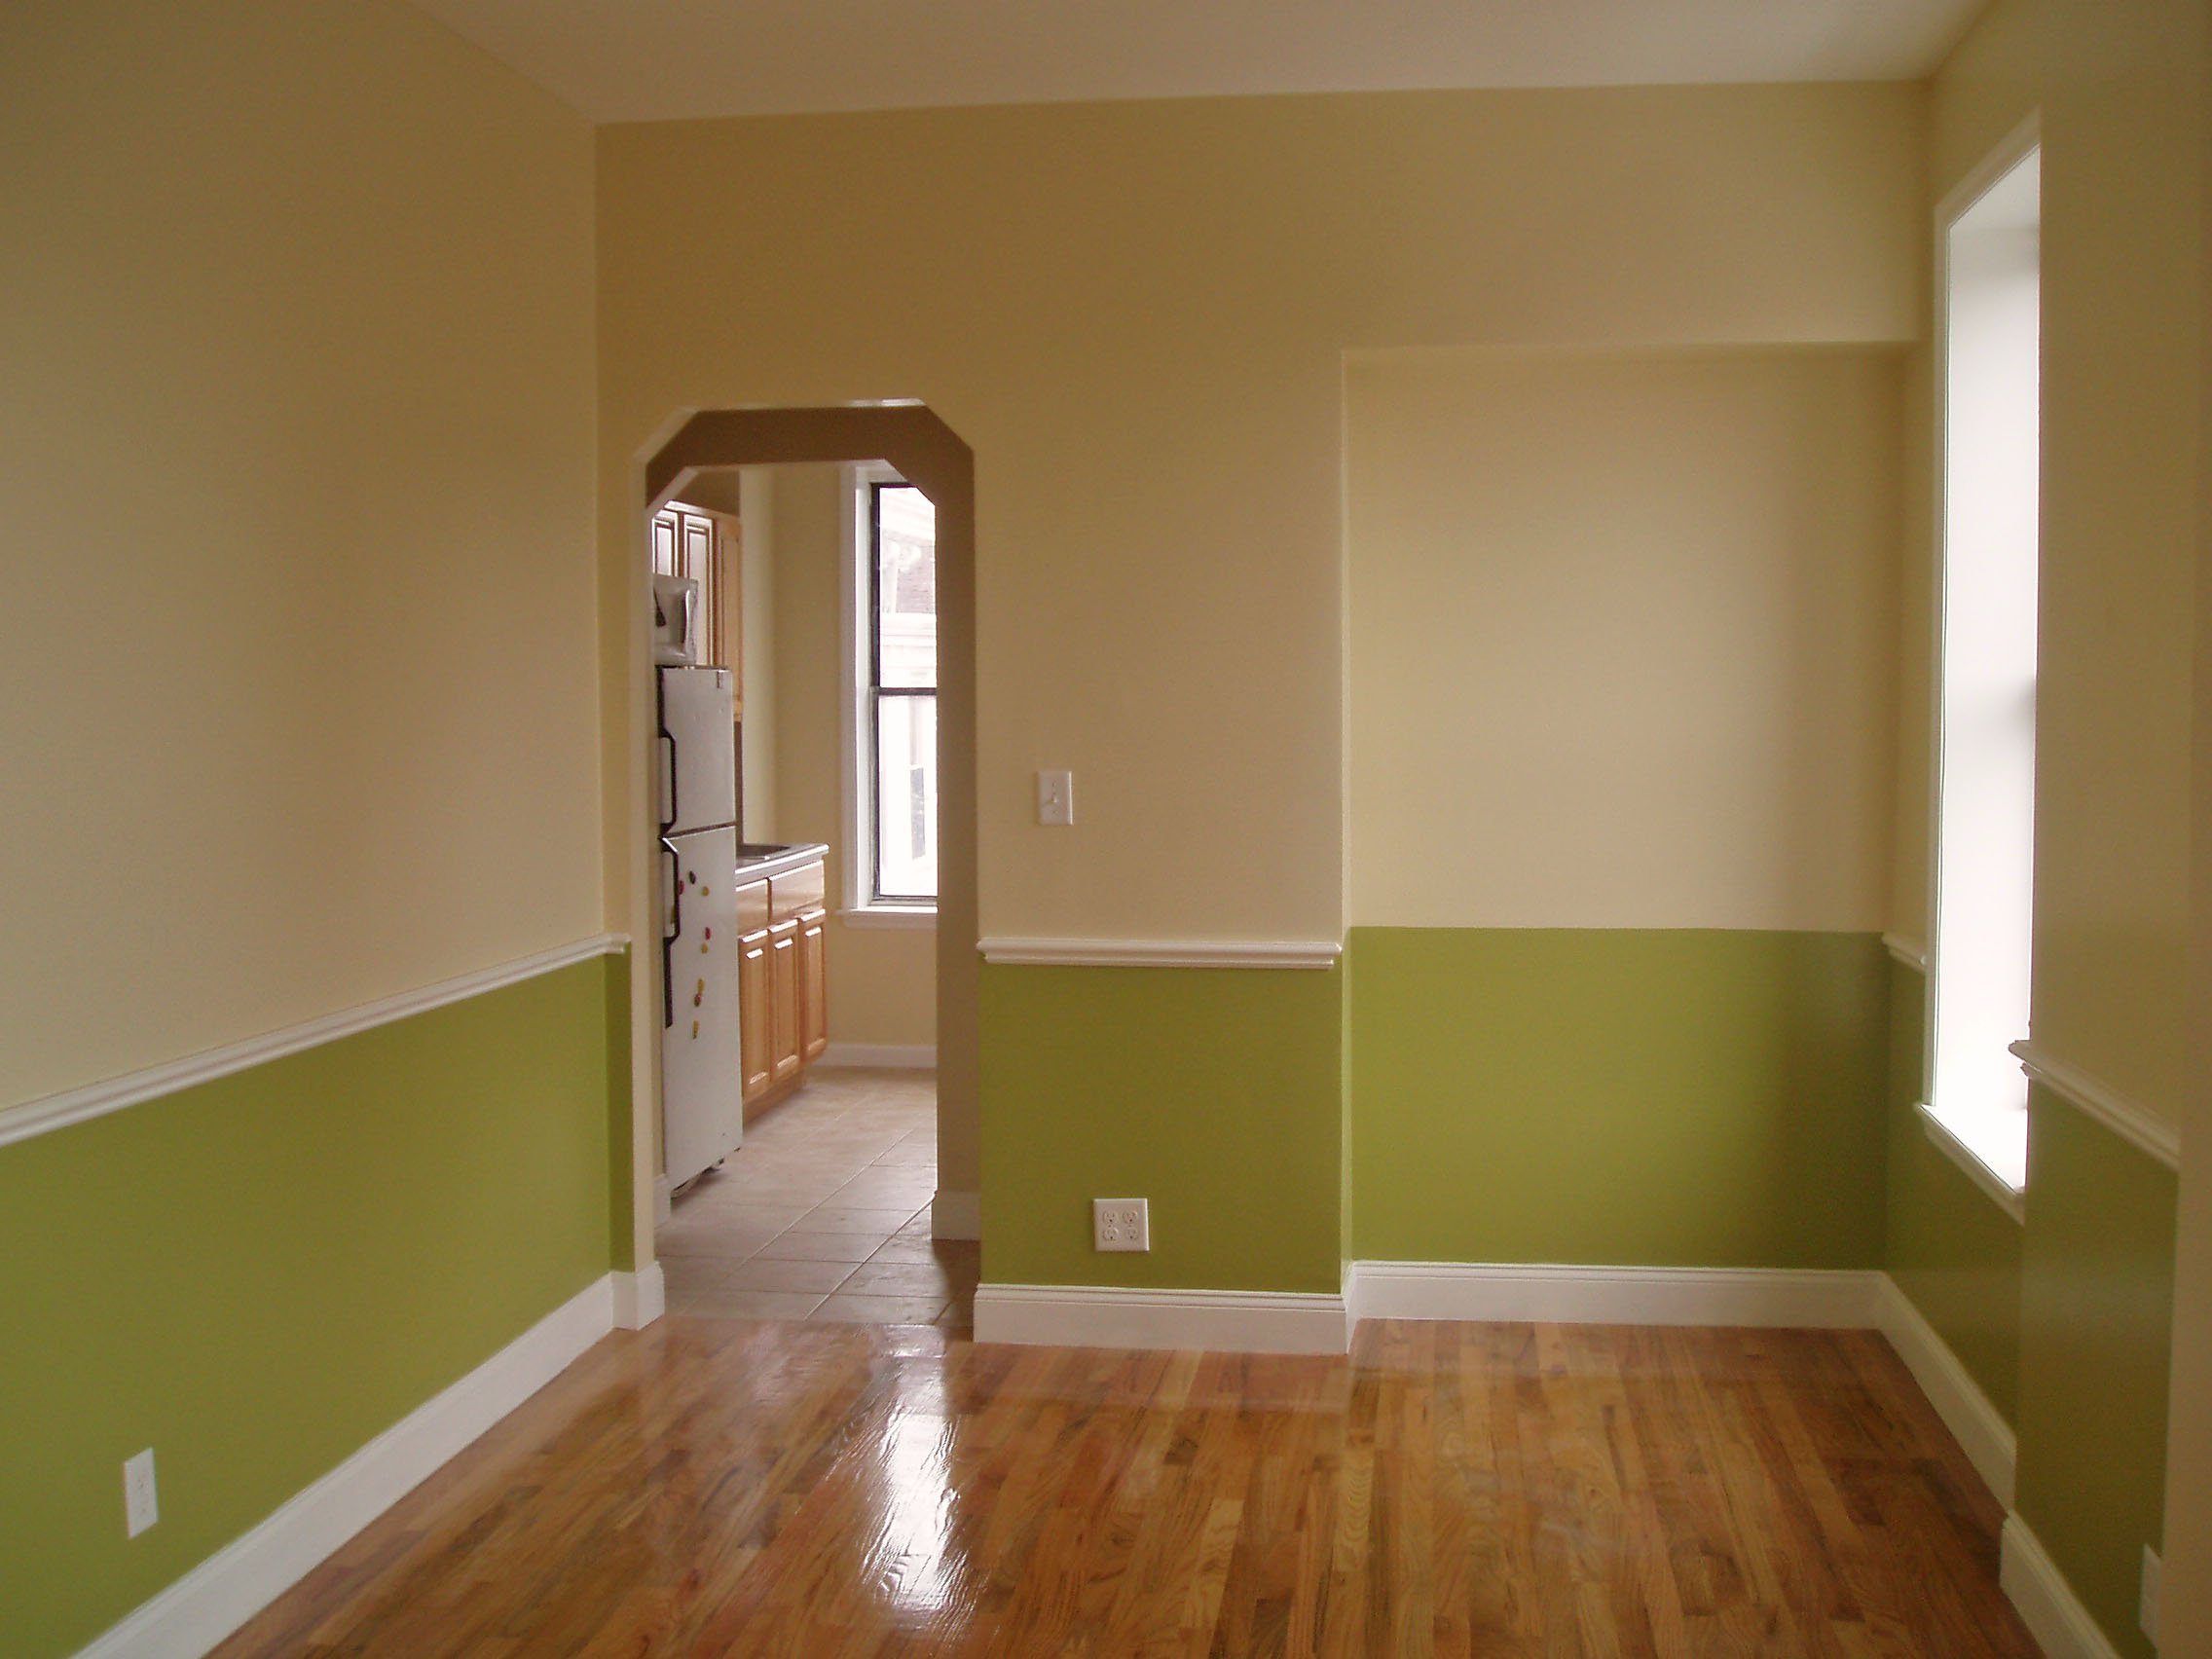 Crown heights 2 bedroom apartment for rent brooklyn crg3003 for 2 bedroom apartments for rent